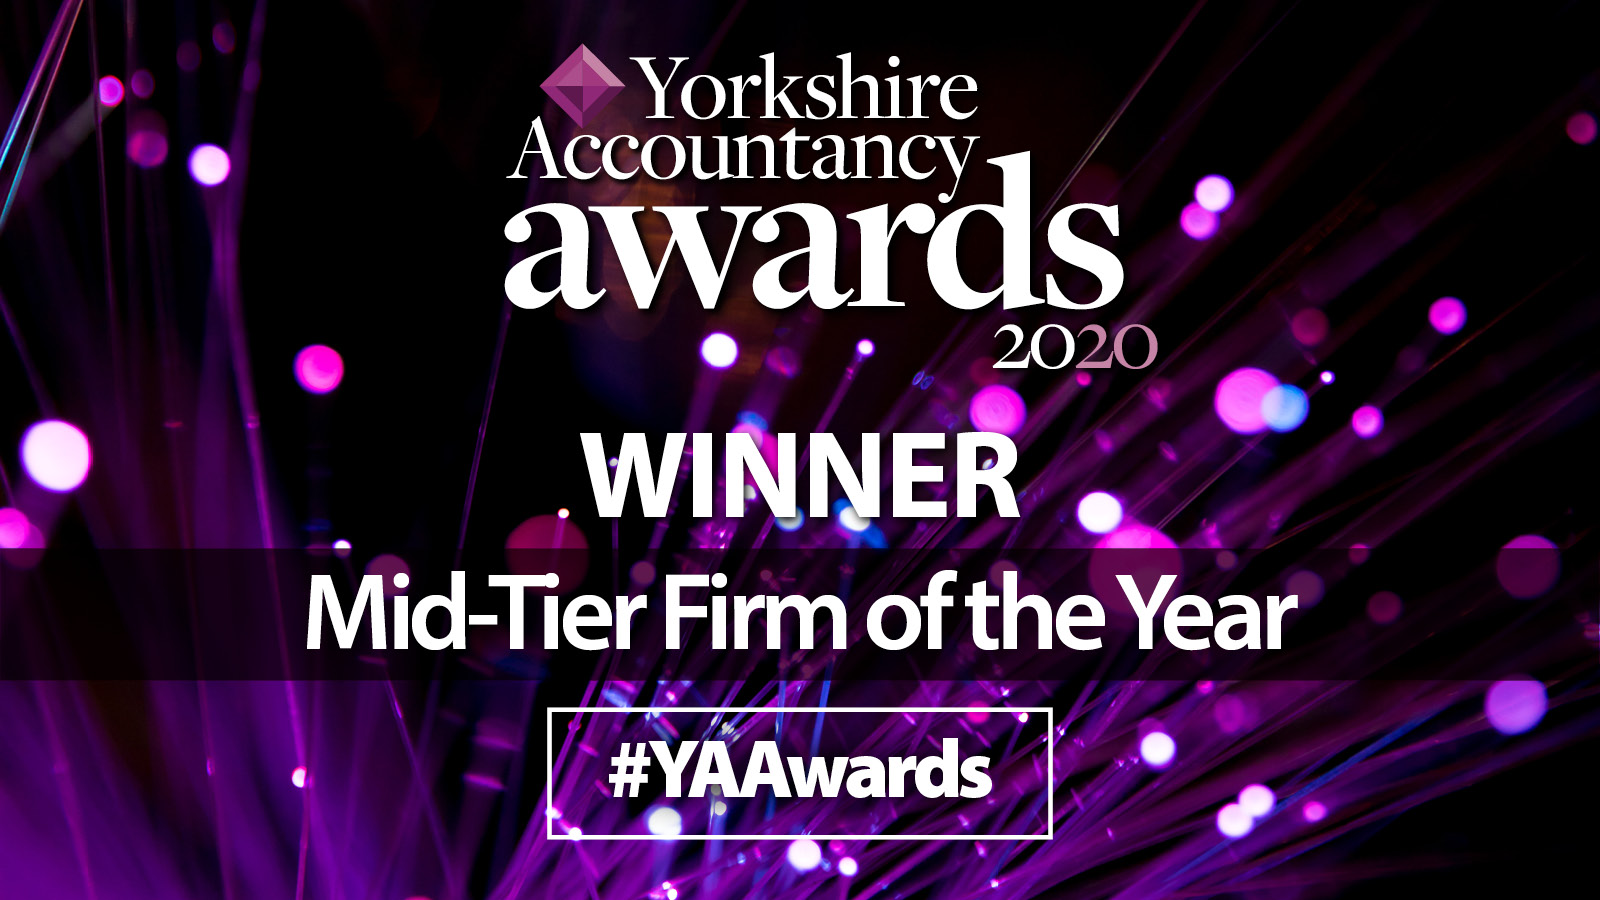 Mid-Tier Firm Of The Year Yorkshire Accountancy Awards 2020